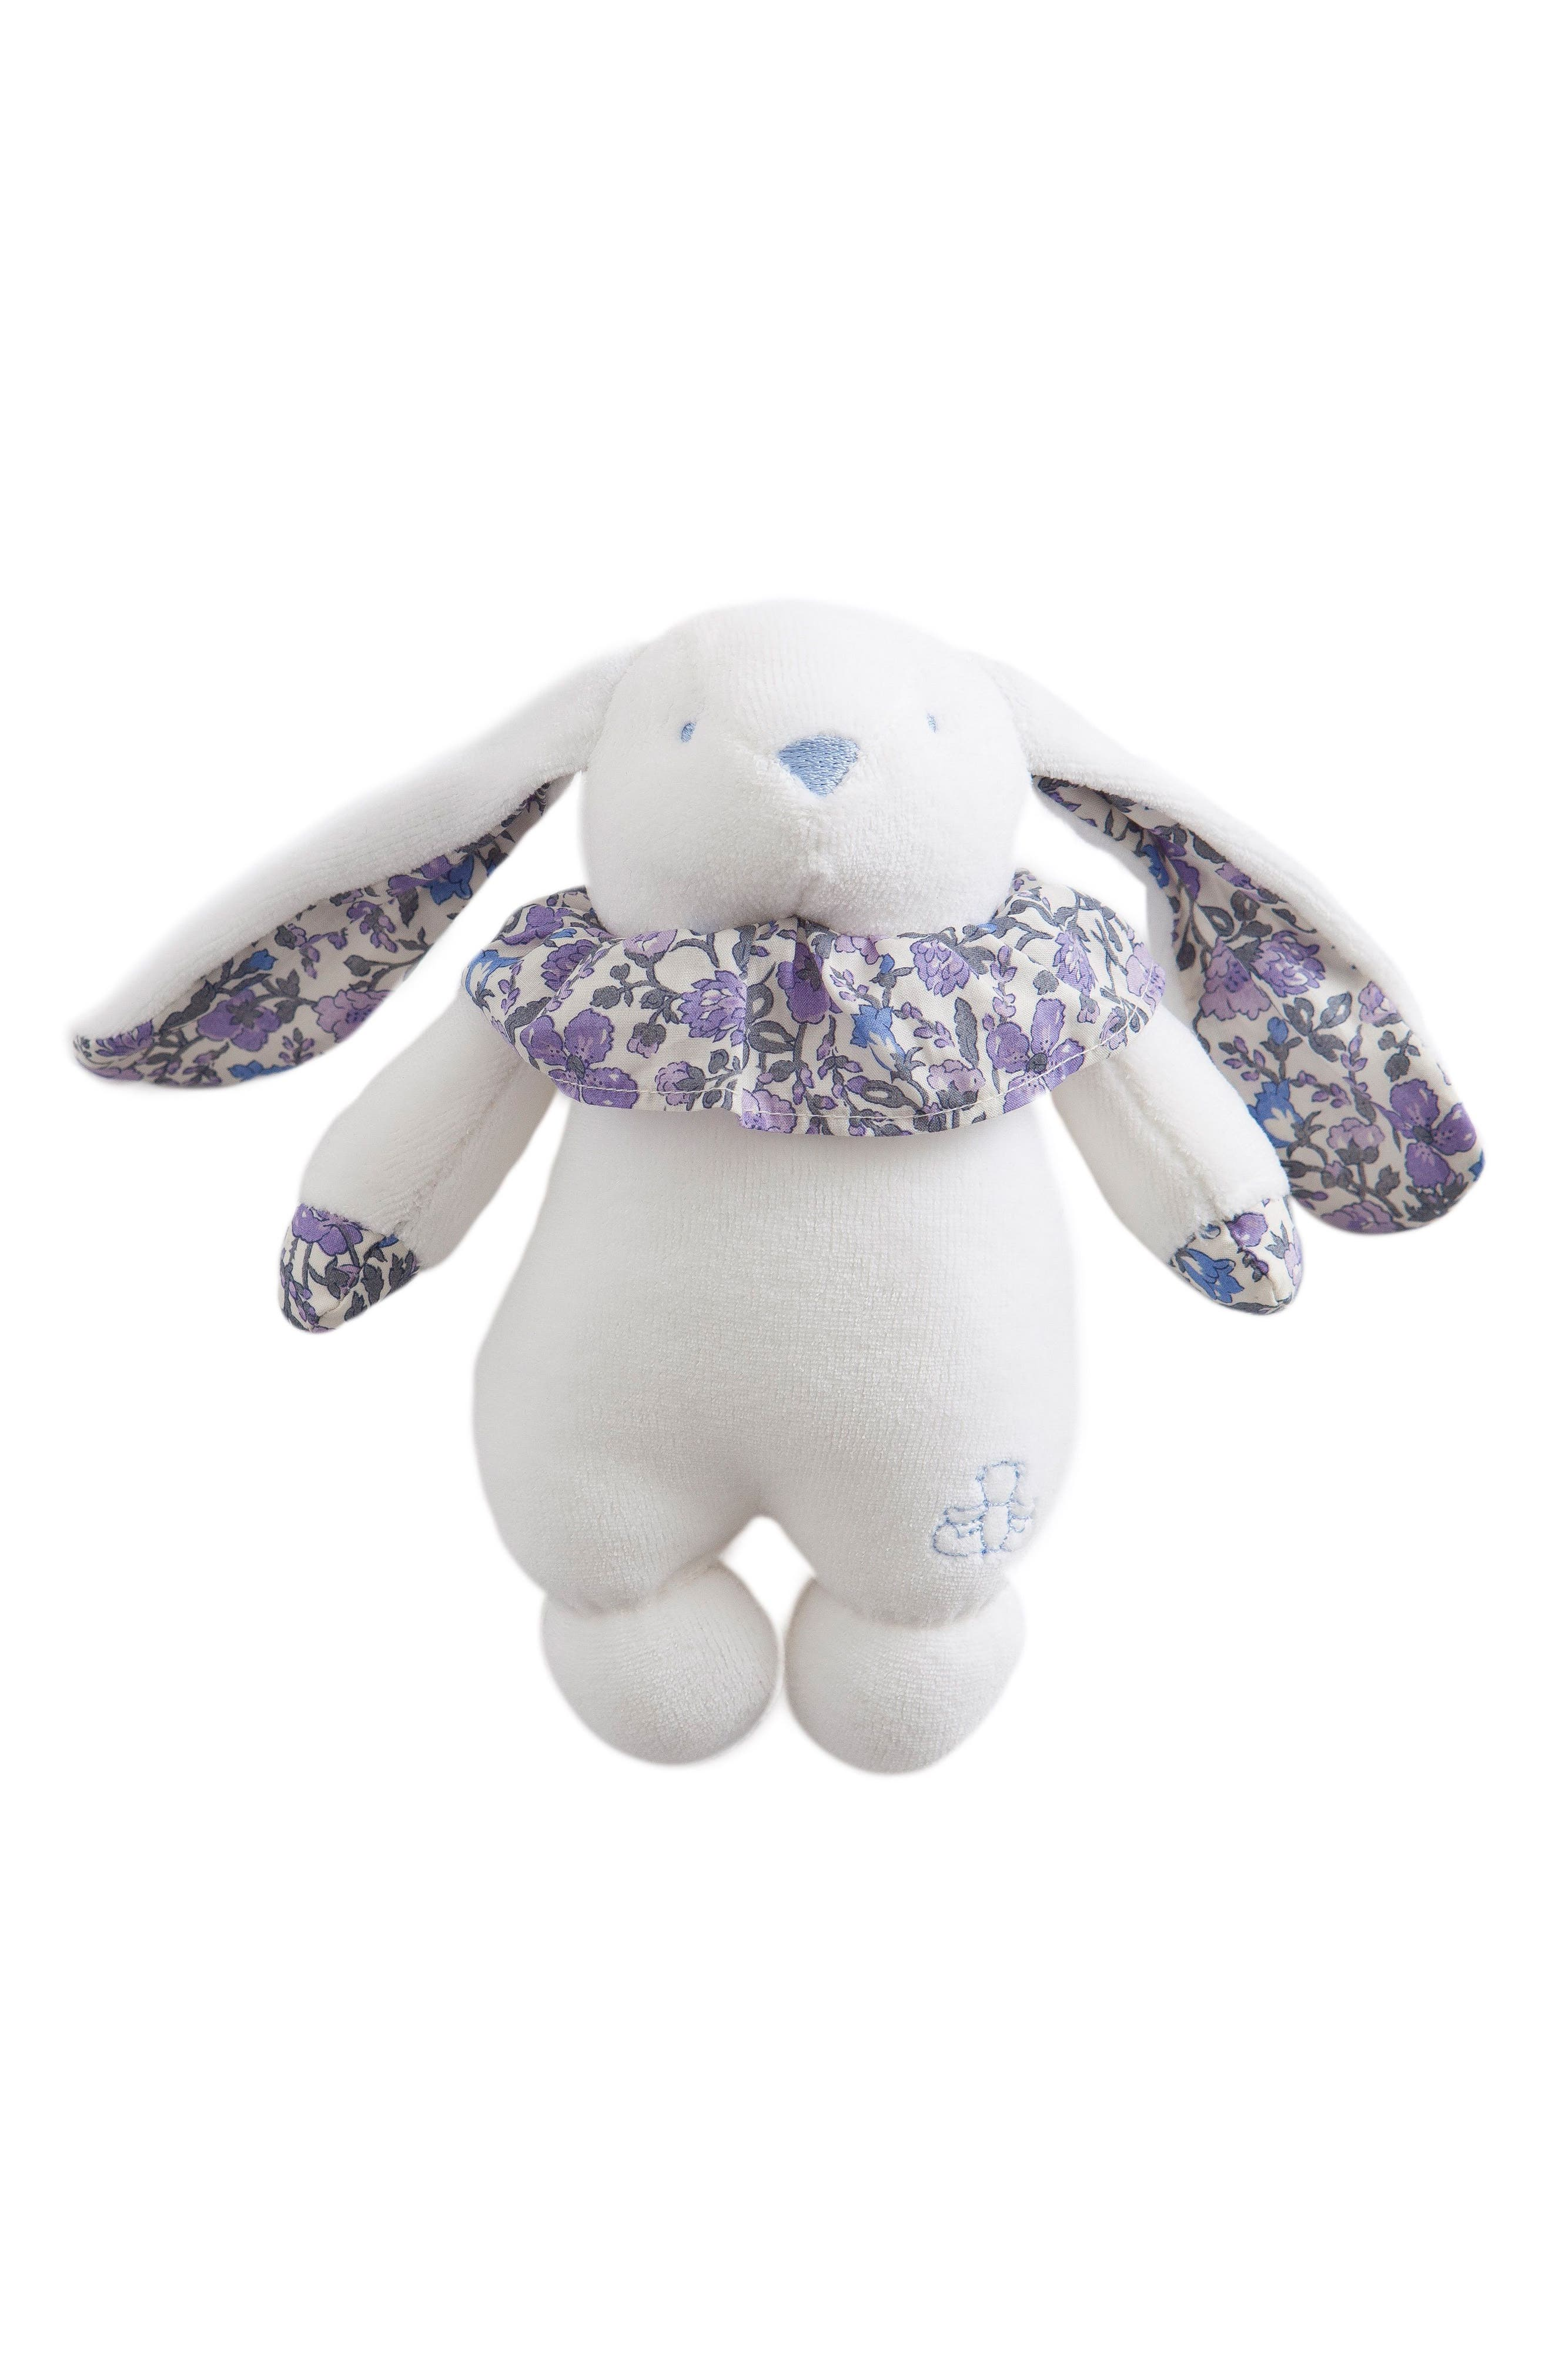 Alternate Image 1 Selected - Pamplemousse Peluches x Liberty of London Rabbit Rattle